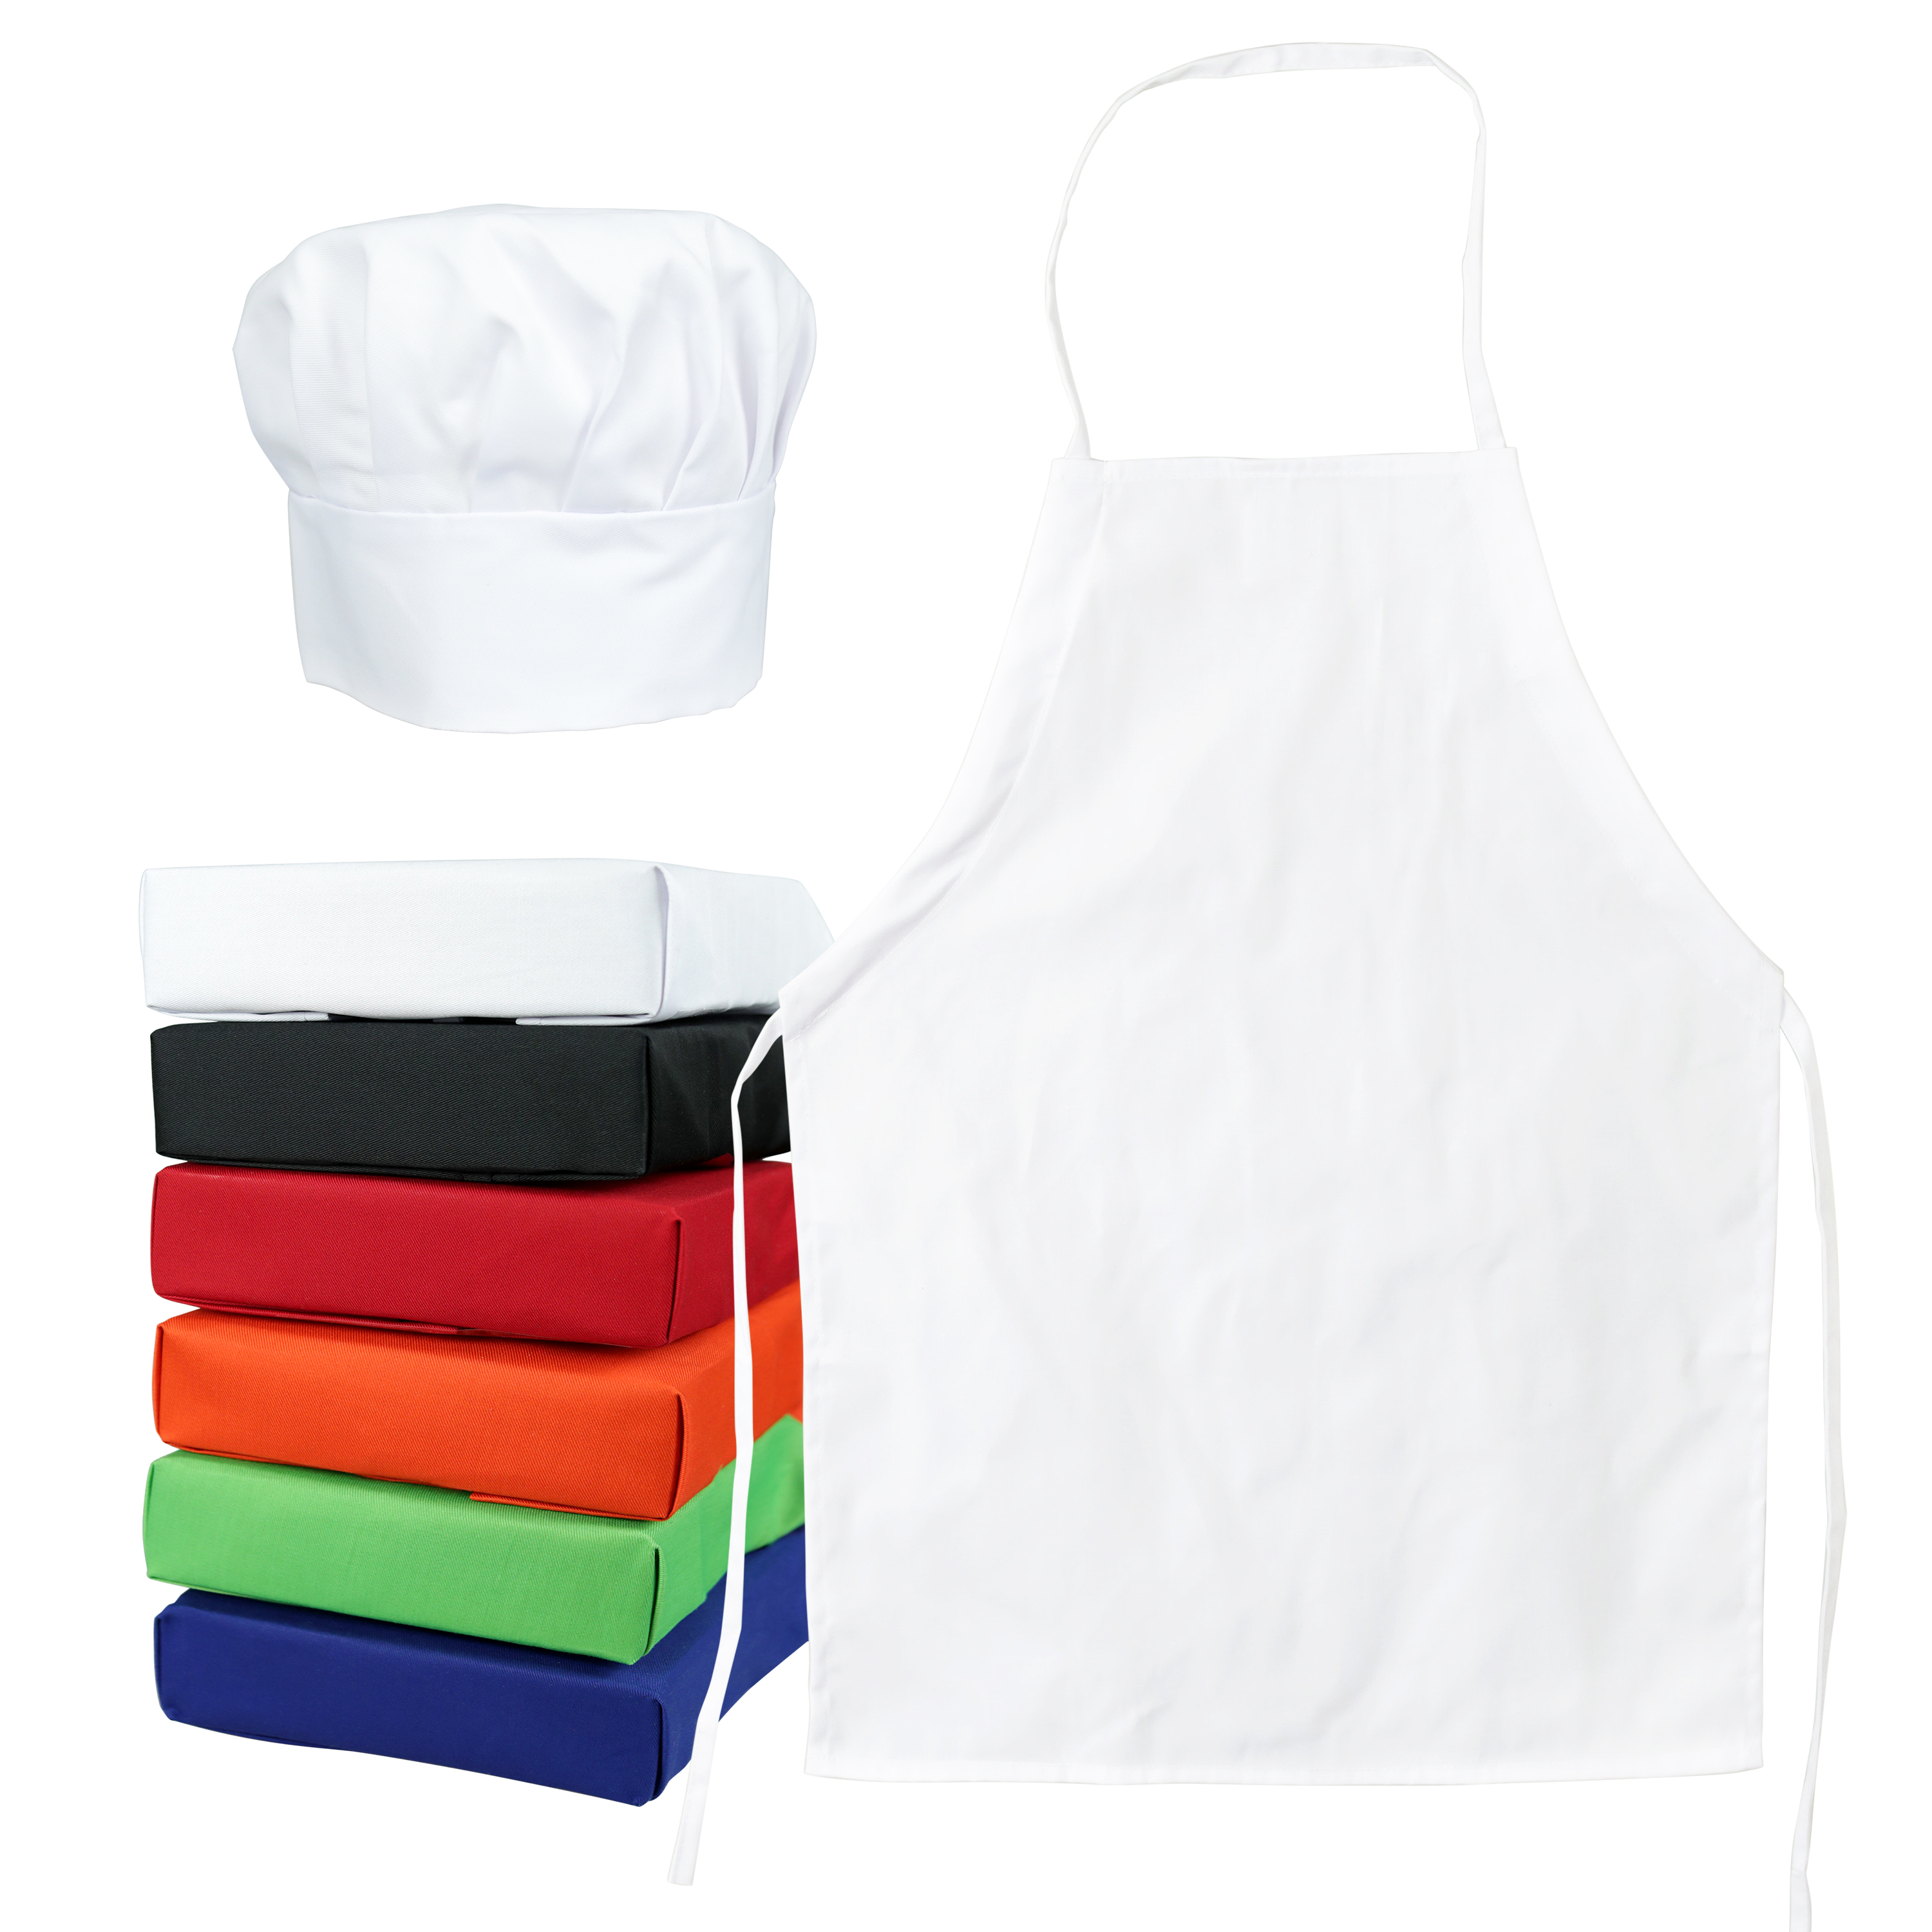 Tessa's Kitchen Club Kids -Child's Chef Hat Apron Set, Kids Size, Children's Kitchen Cooking and Baking Wear Kit for those Chefs in Training (Med 6-12 Years, White)